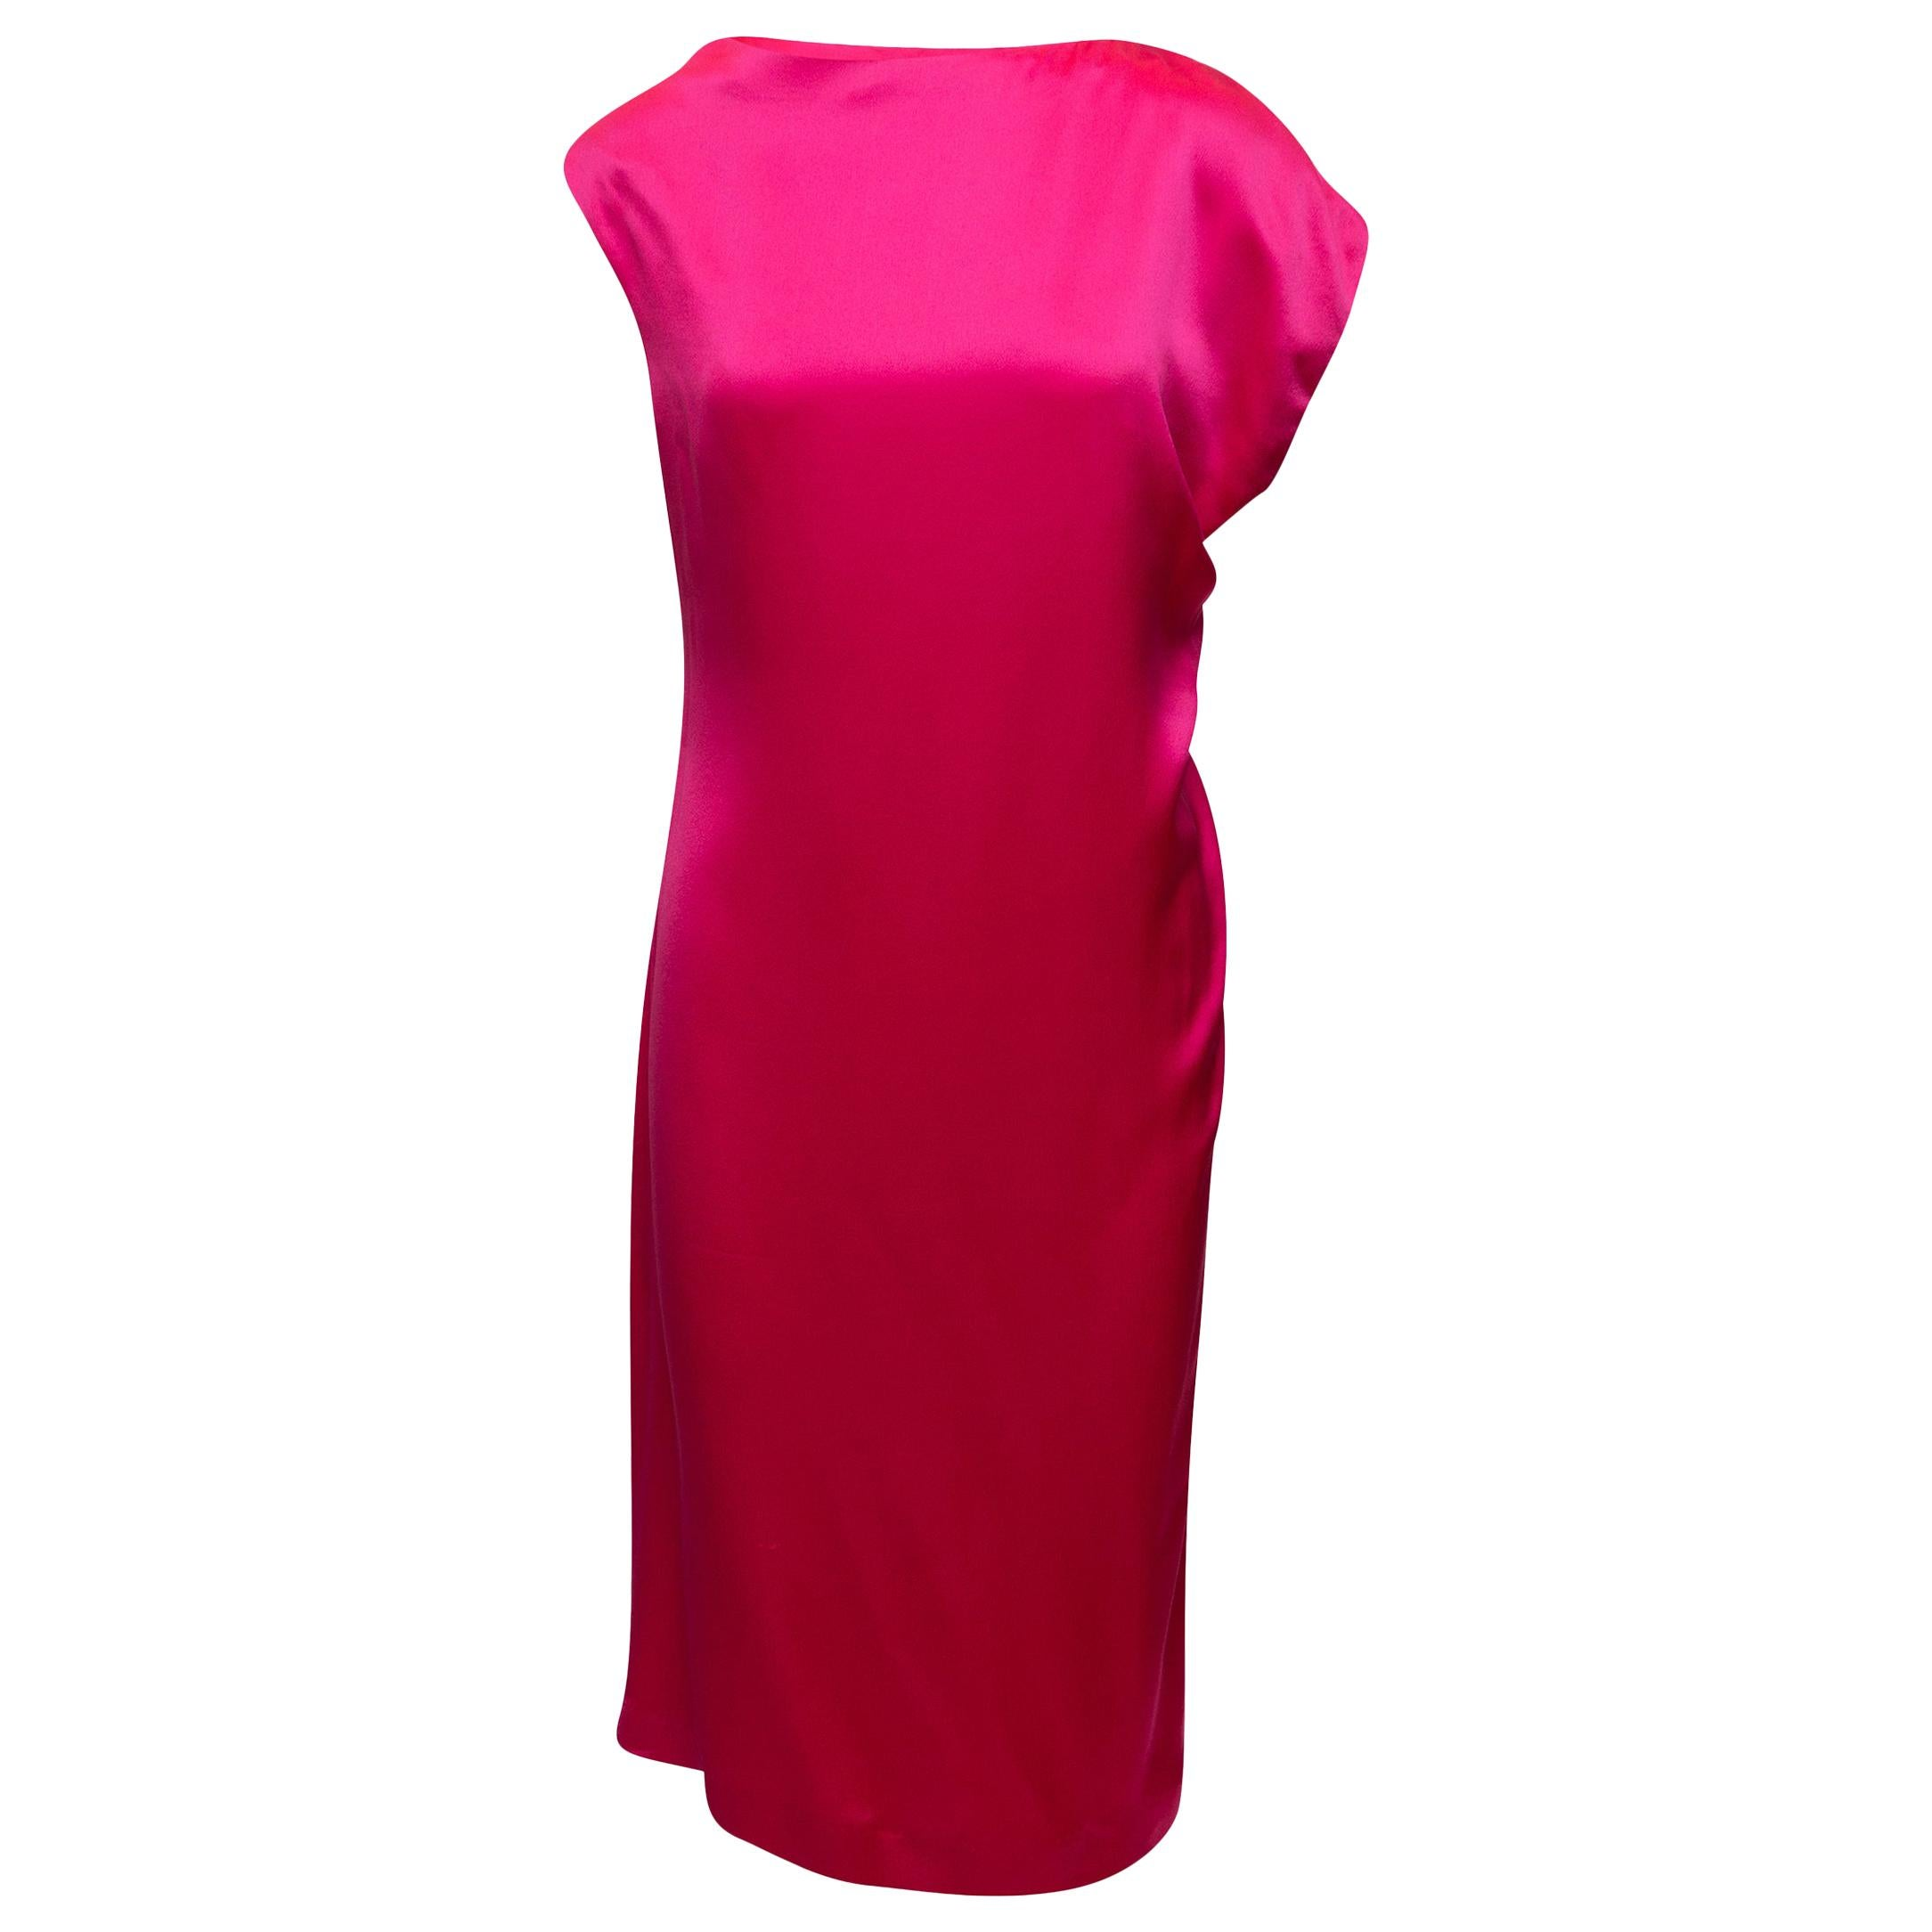 Alexander McQueen Hot Pink Silk Midi Dress